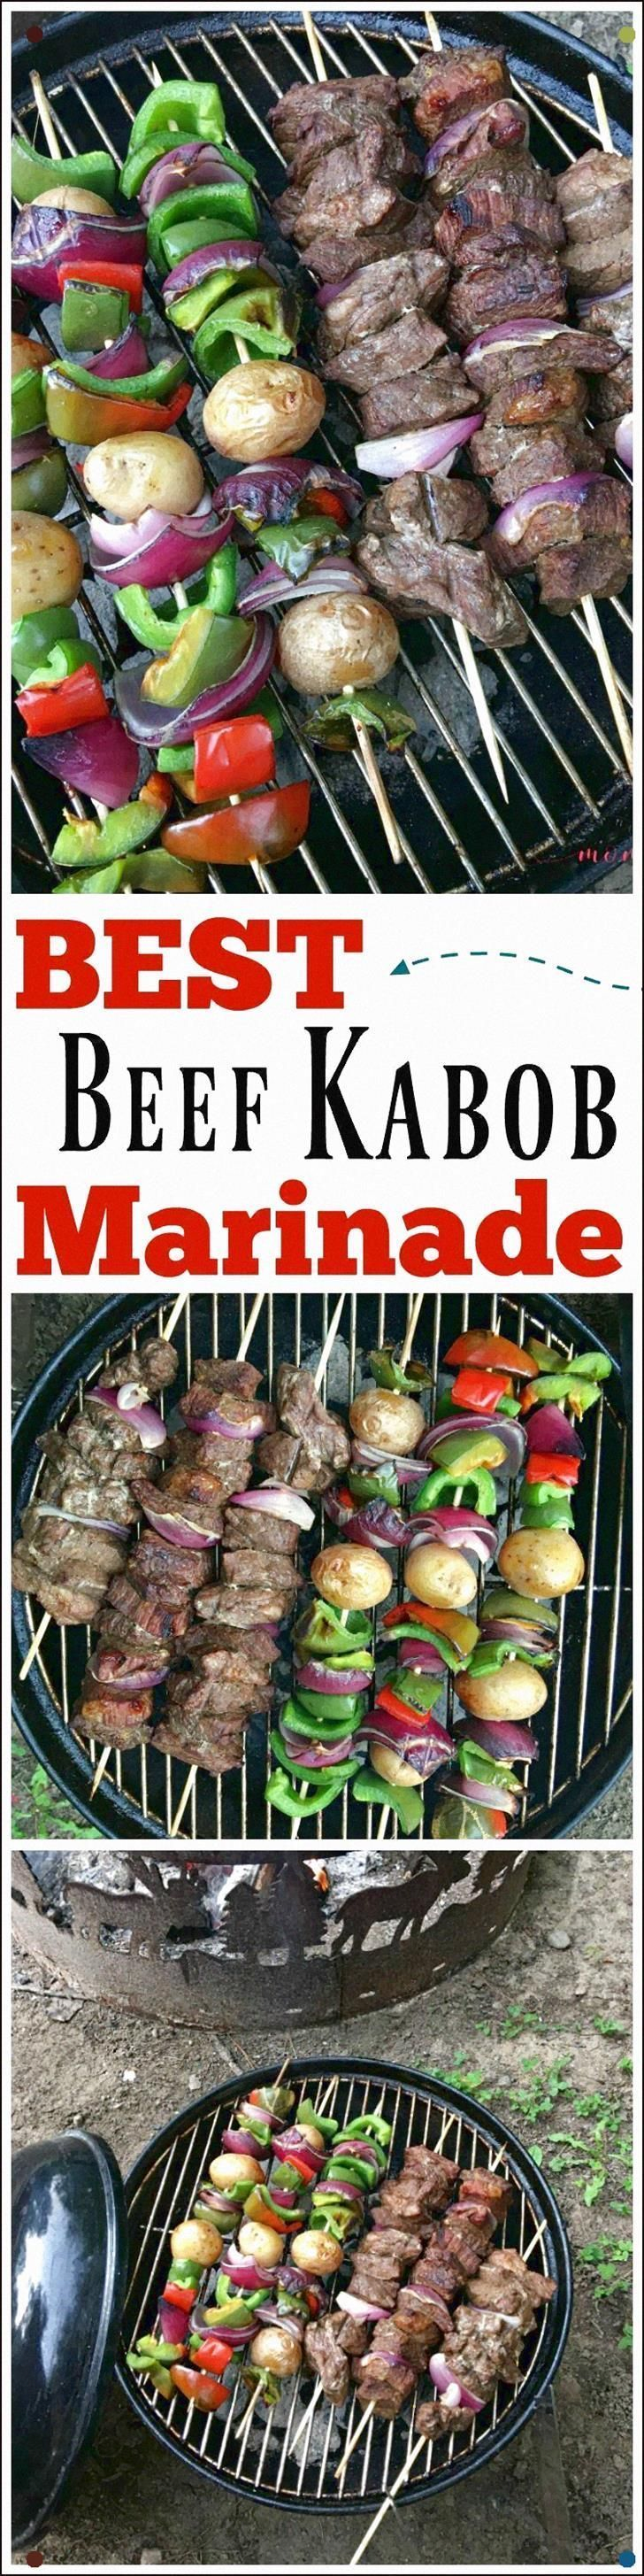 Best Beef Kabob Marinade Recipe These Beef Kabobs #chickenkabobmarinade Best Beef Kabob Marinade Recipe These Beef Kabobs #chickenkabobmarinade Best Beef Kabob Marinade Recipe These Beef Kabobs #chickenkabobmarinade Best Beef Kabob Marinade Recipe These Beef Kabobs #chickenkabobmarinade Best Beef Kabob Marinade Recipe These Beef Kabobs #chickenkabobmarinade Best Beef Kabob Marinade Recipe These Beef Kabobs #chickenkabobmarinade Best Beef Kabob Marinade Recipe These Beef Kabobs #chickenkabobmarin #chickenkabobmarinade